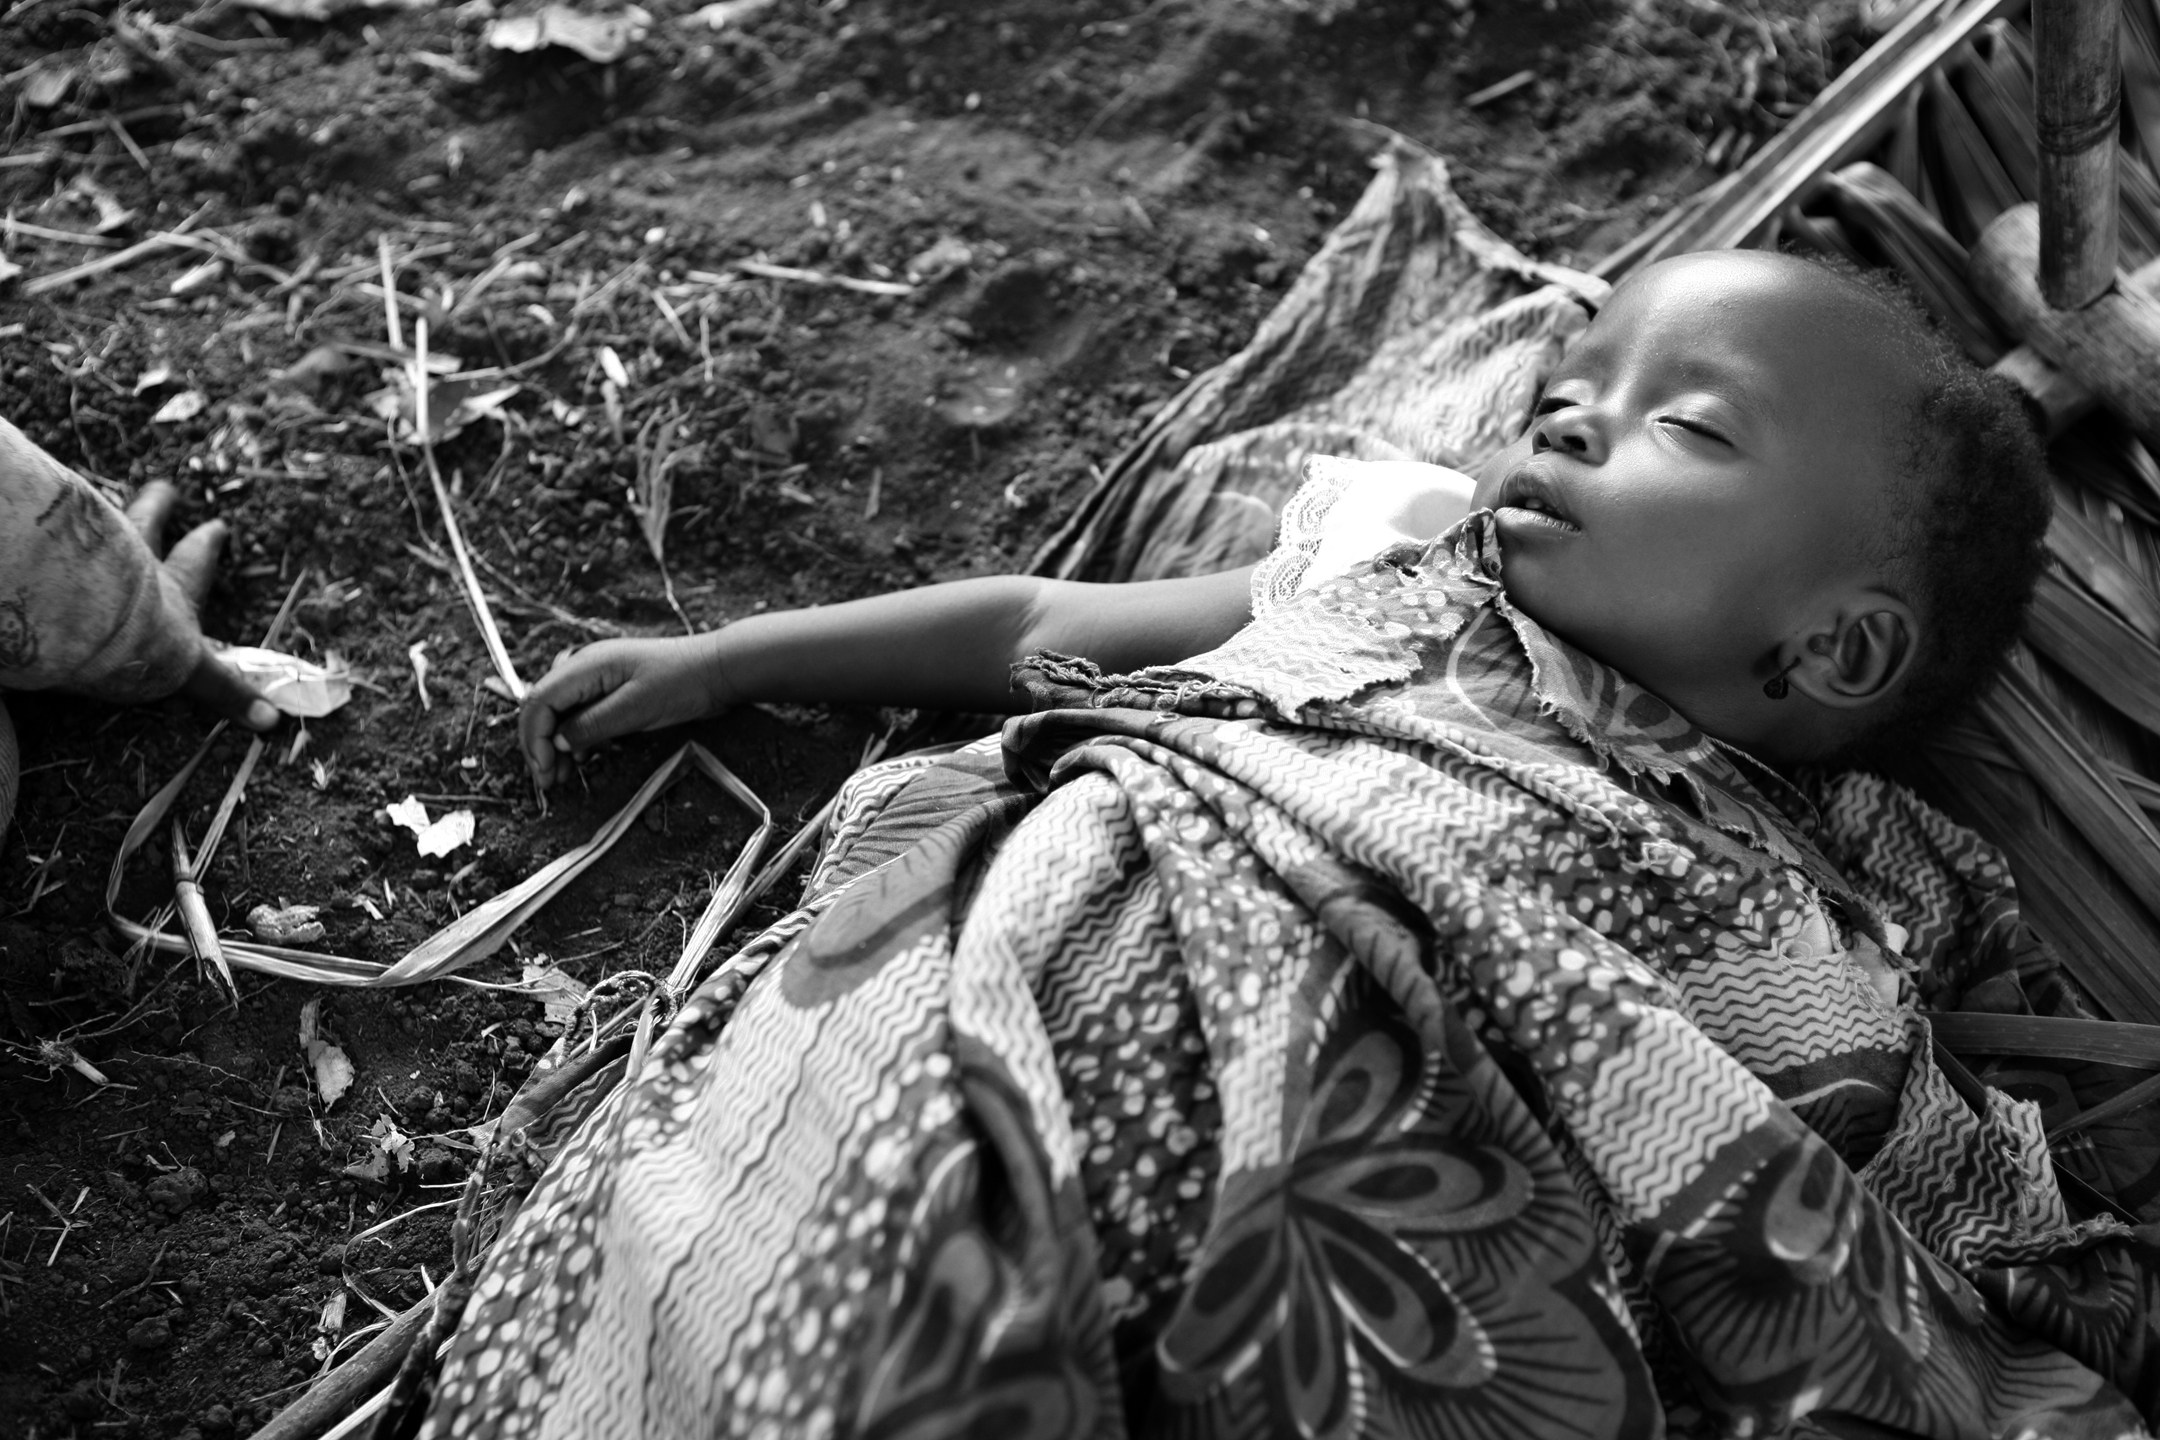 Baby Merci sleeps under a UNHCR tarp at Makpandu. Her mother Boribye fled with her two daughters from Duru, a remote village in Orientale Province, DRC that has been victim to repeated attacks since September.